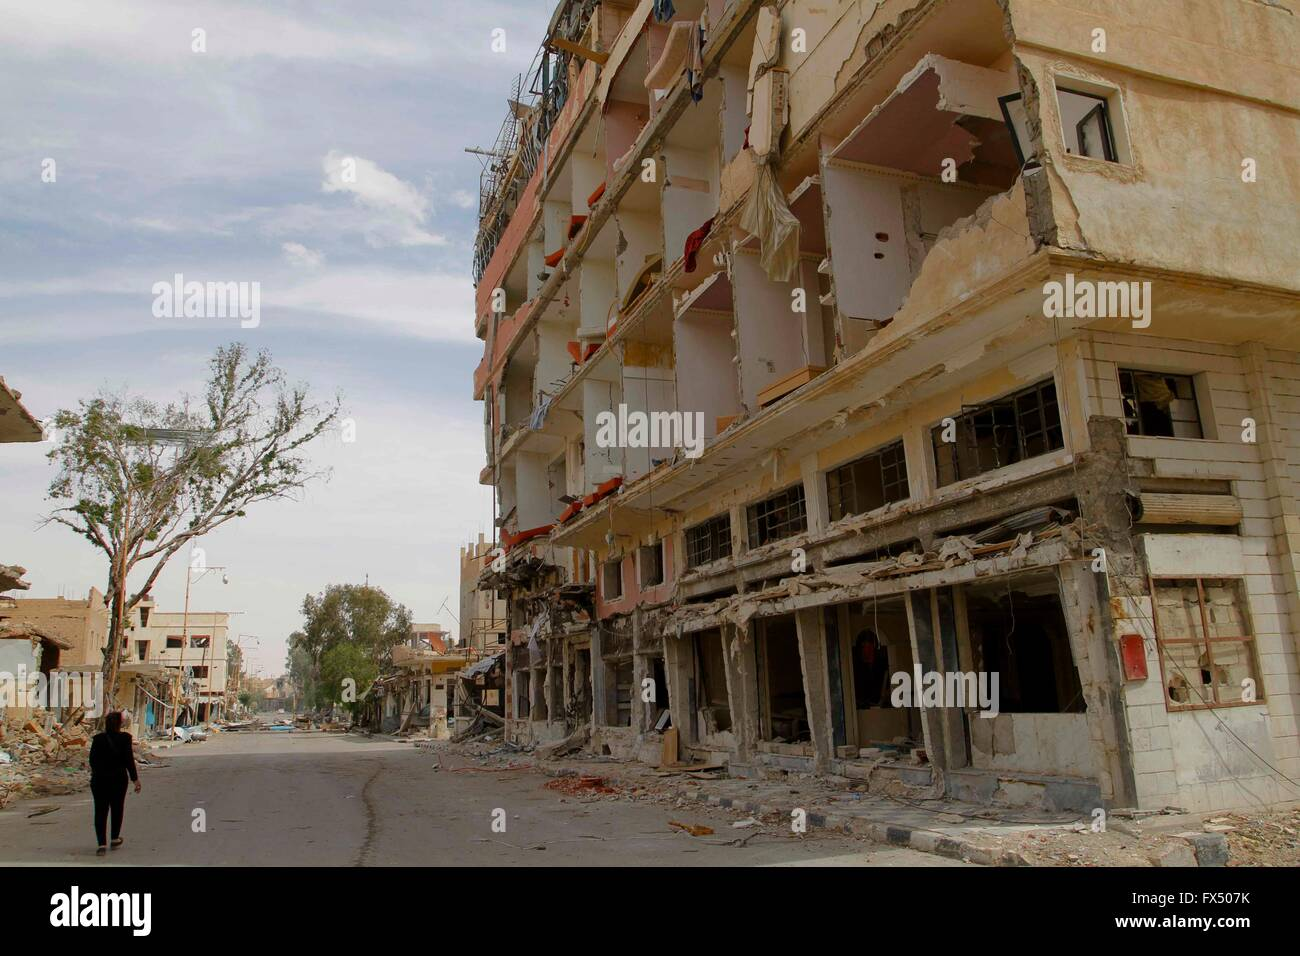 Palmyra, Syria. 11th Apr, 2016. A Syrian civilian walks past a damaged building in Palmyra, central Syria, on April - Stock Image